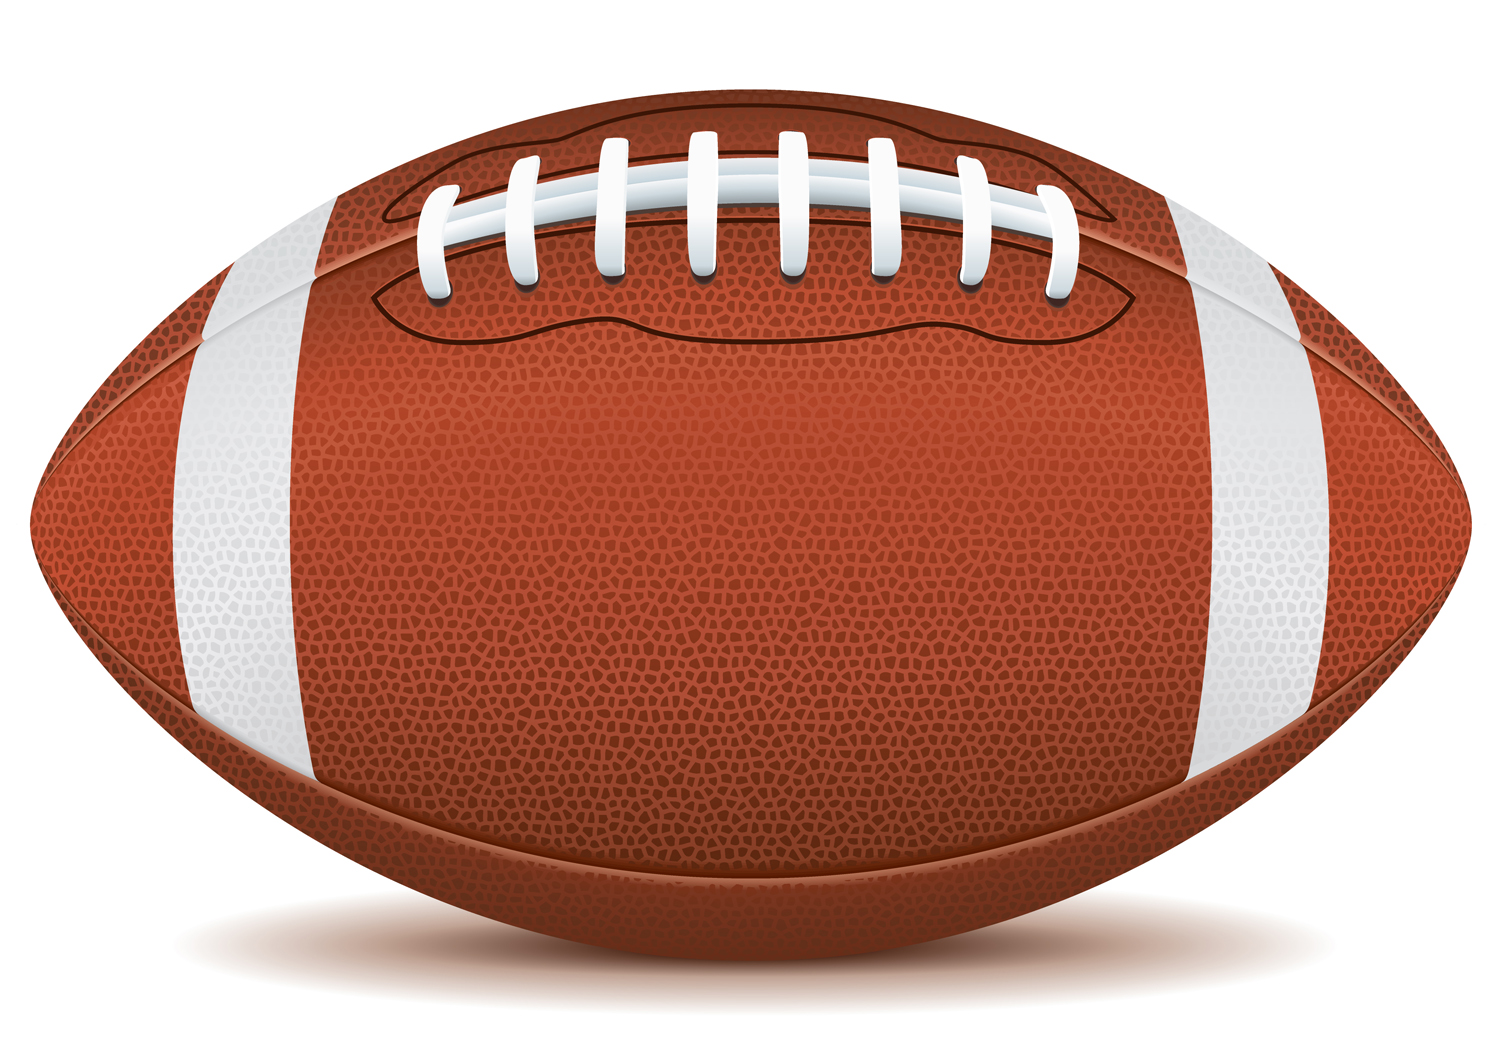 Free A Picture Of A Football, Download Free Clip Art, Free